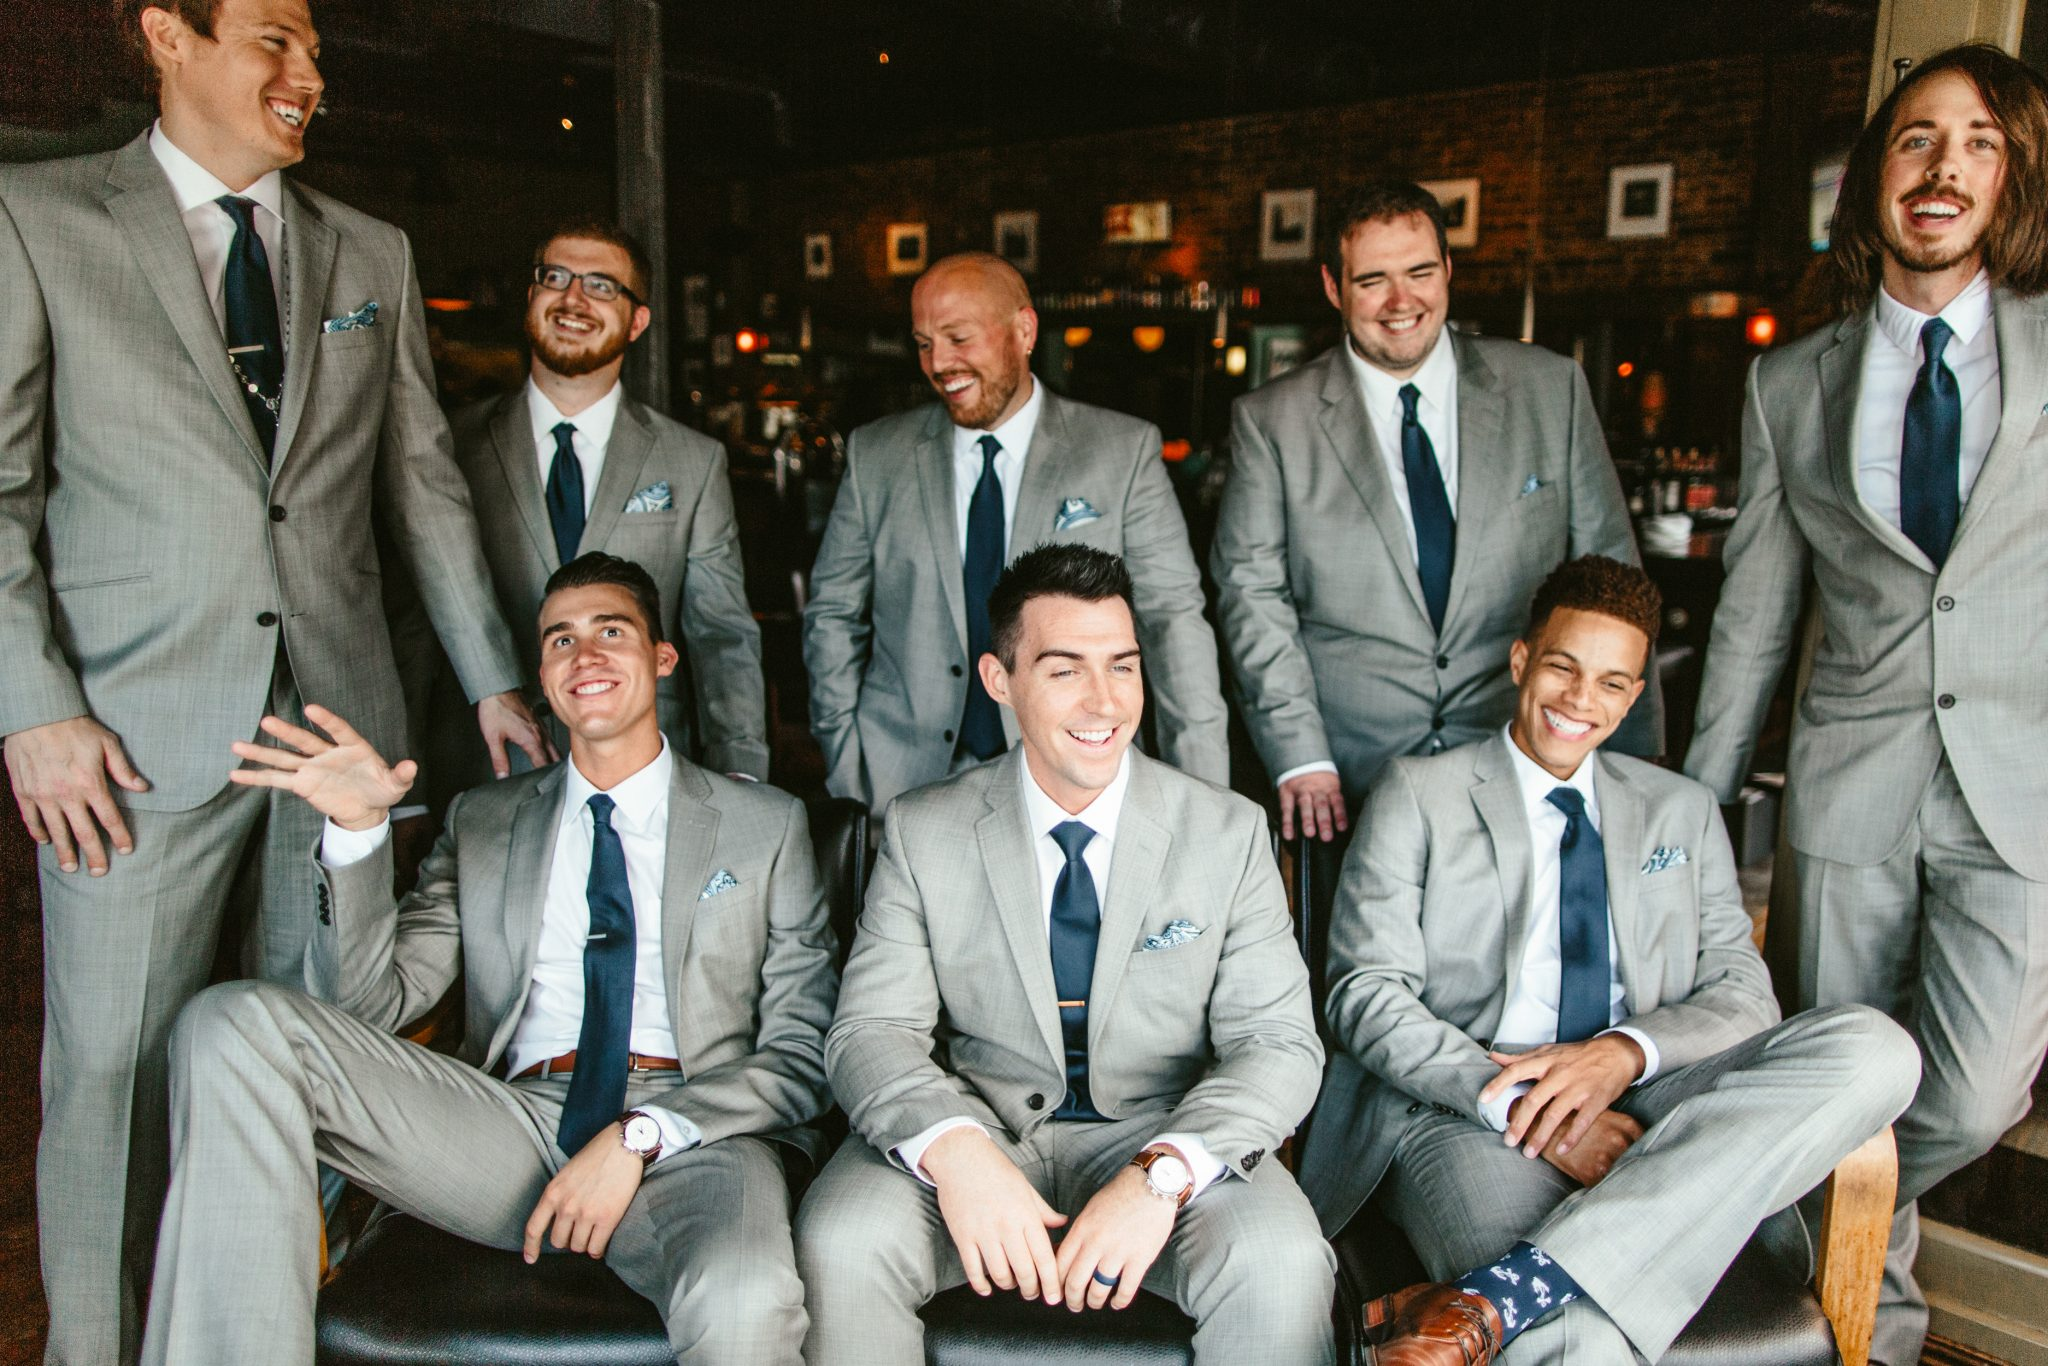 groomsmen style, groomsmen in grey suit, groomsmen with blue tie, groomsmen photos, bar groomsmen photos, bridal party photos at a bar, bar bridal party photos, unique wedding photo location, bar wedding inspiration, philadelphia documentary wedding photographer, Brooklyn wedding photography, Brooklyn wedding, Philadelphia wedding photographer, Philadelphia wedding, Brooklyn new york photographer, unique wedding inspiration, fun wedding photos, romantic wedding, destination wedding photographer, wedding photography inspiration, destination wedding inspiration, city wedding ideas